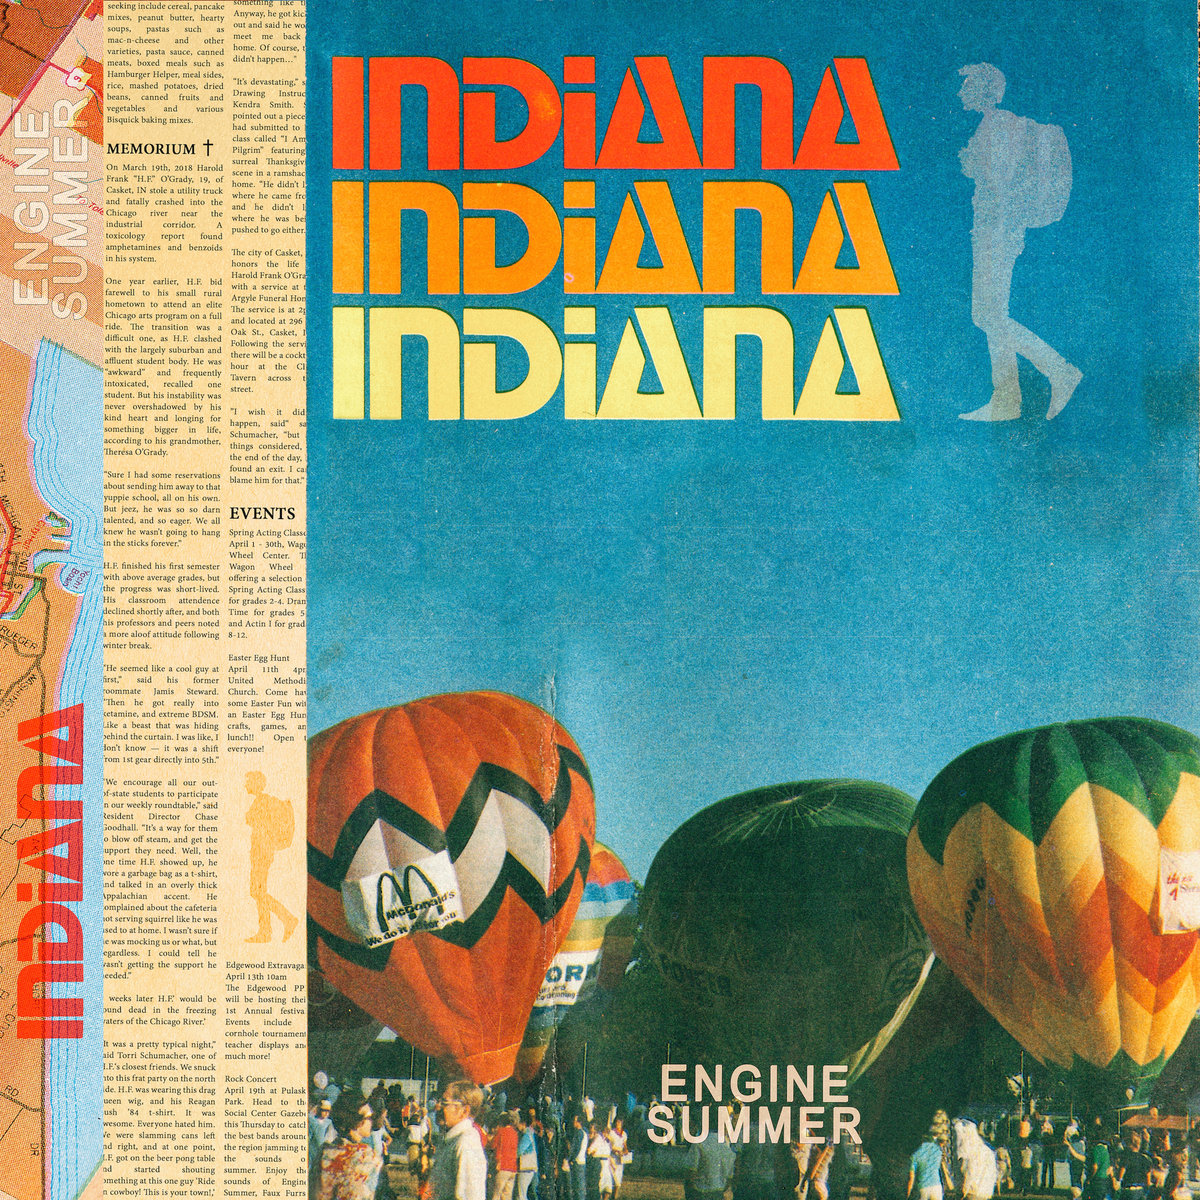 Indiana (2019) is a boozy, groovy, noise punk underdog tale, paying homage to 80s DIY punk, 90s lo-fi indie, and ambient hypnotic rock like Deerhunter, Can and LCD Soundsystem.    — Bruce Berry